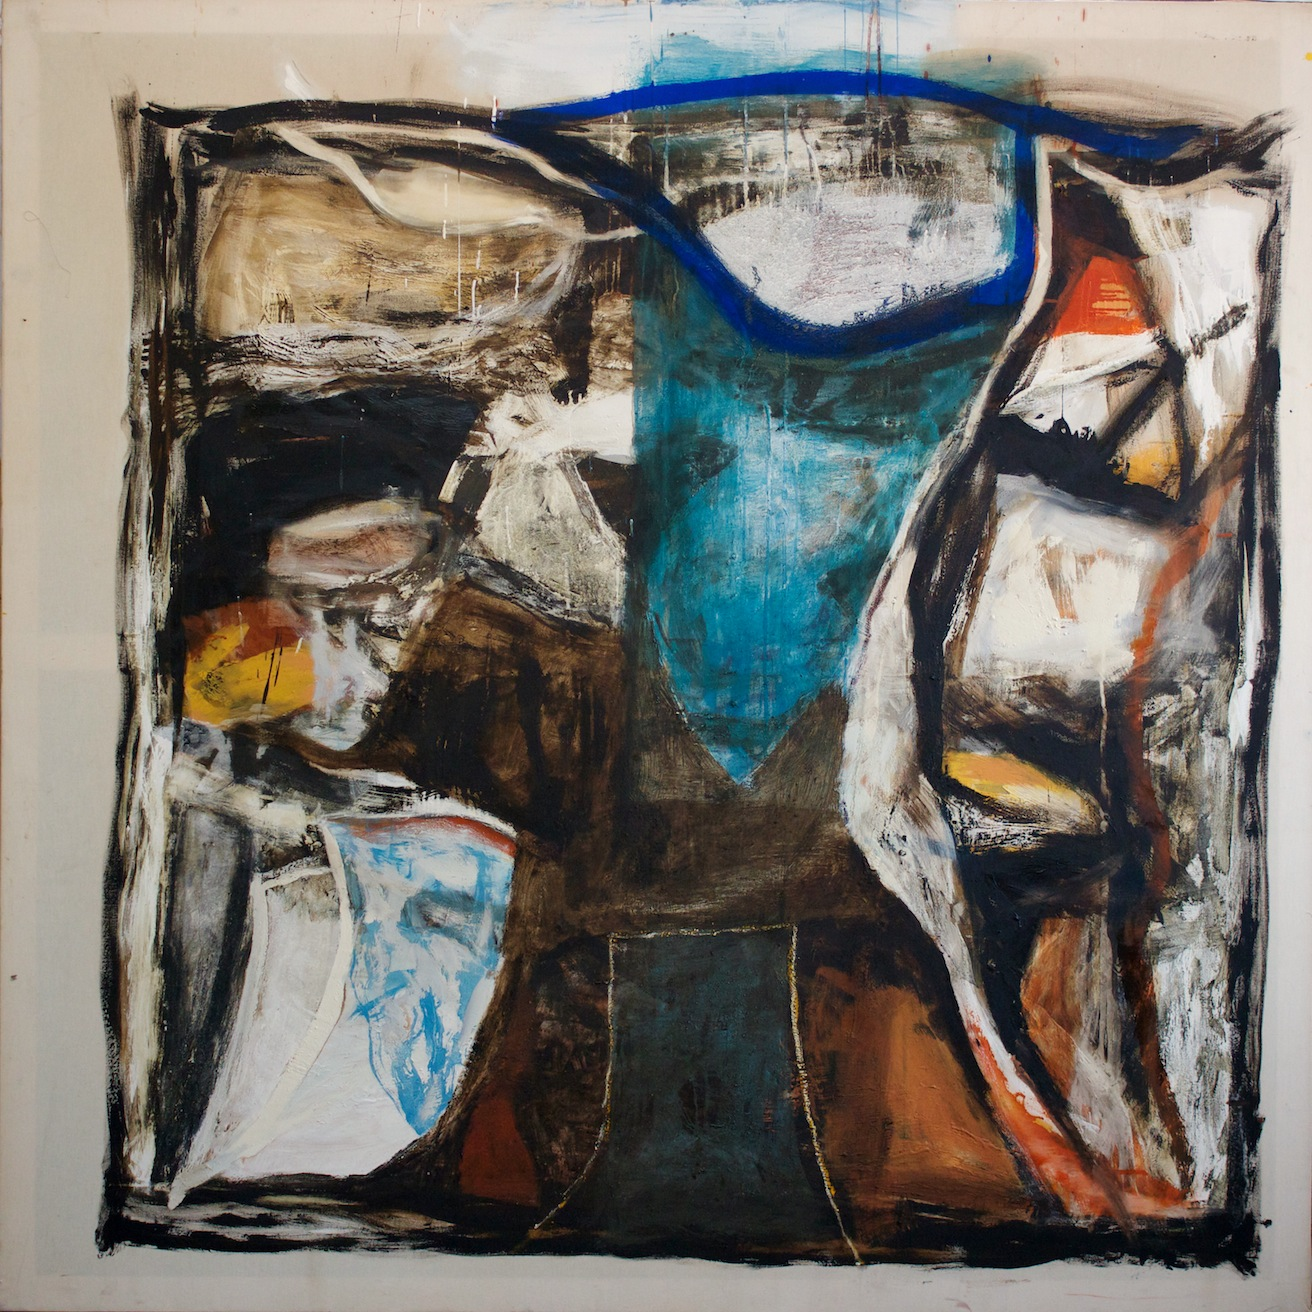 Marcello Mariani - Angelo Sterminatore 2 - Mixed media on canvas - 2010